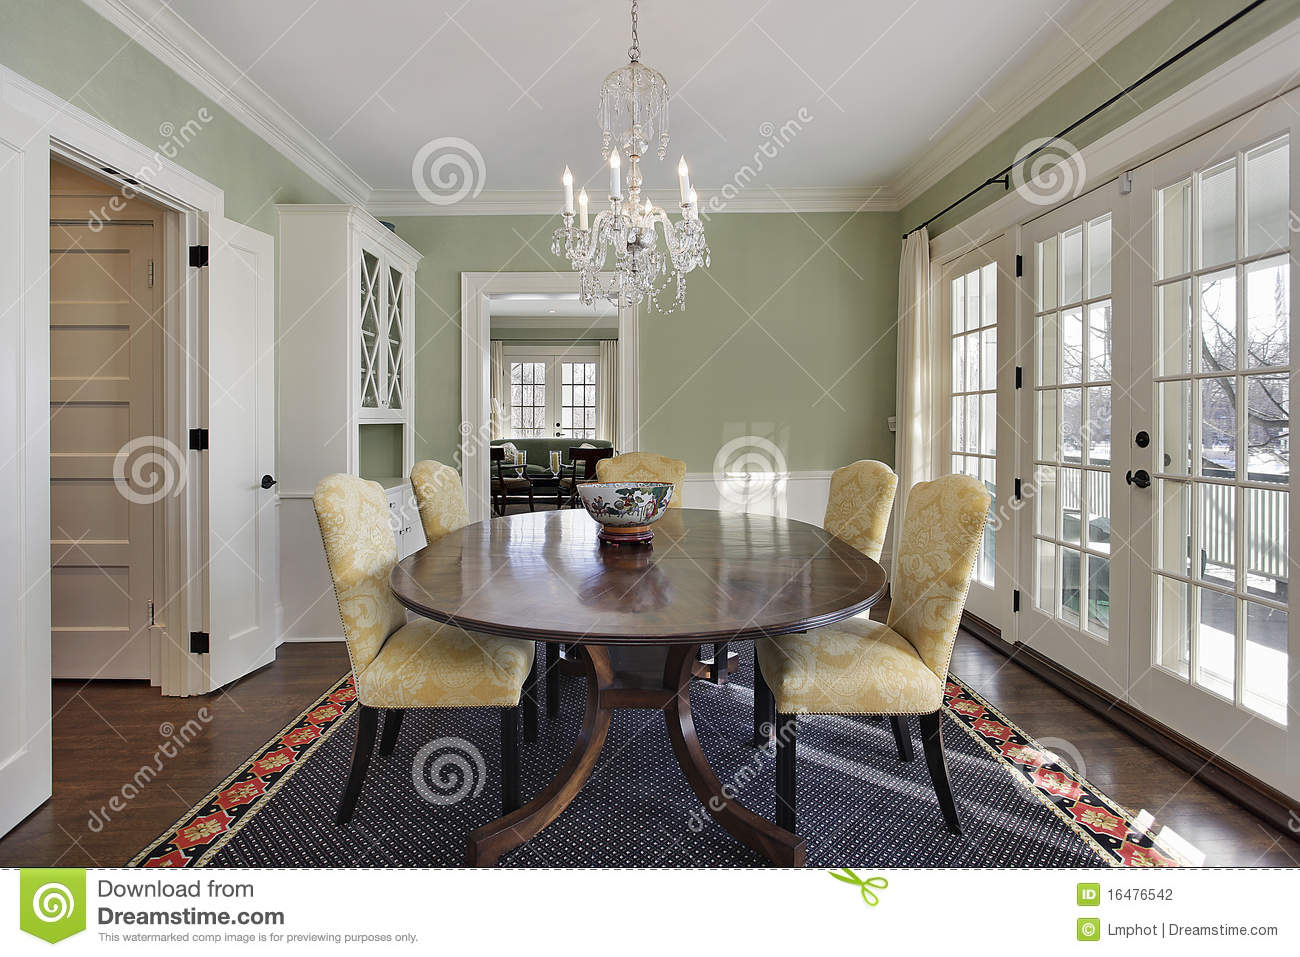 Image Gallery light green walls : dining room green walls 16476542 from keywordsuggest.org size 1300 x 957 jpeg 191kB